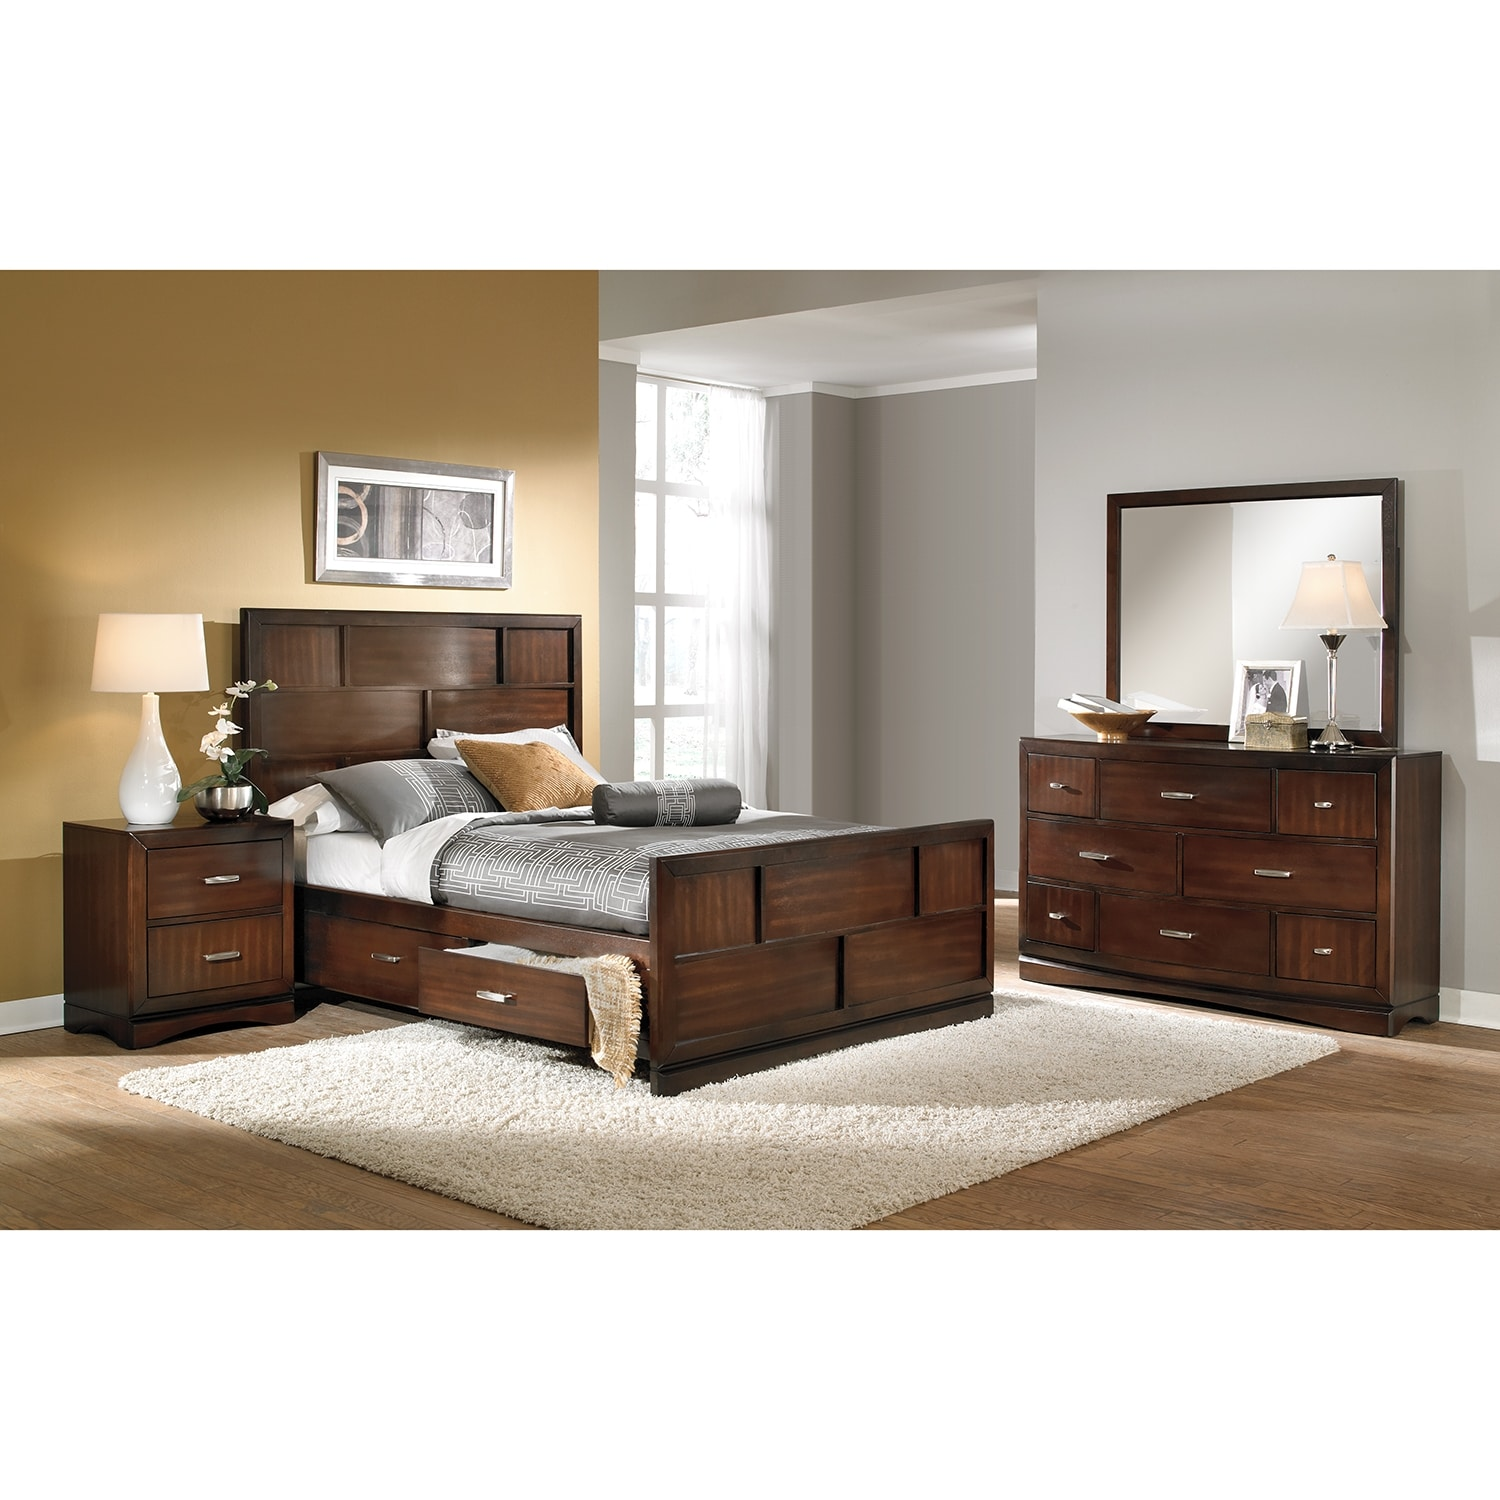 Toronto 6-Piece Queen Storage Bedroom Set - Pecan